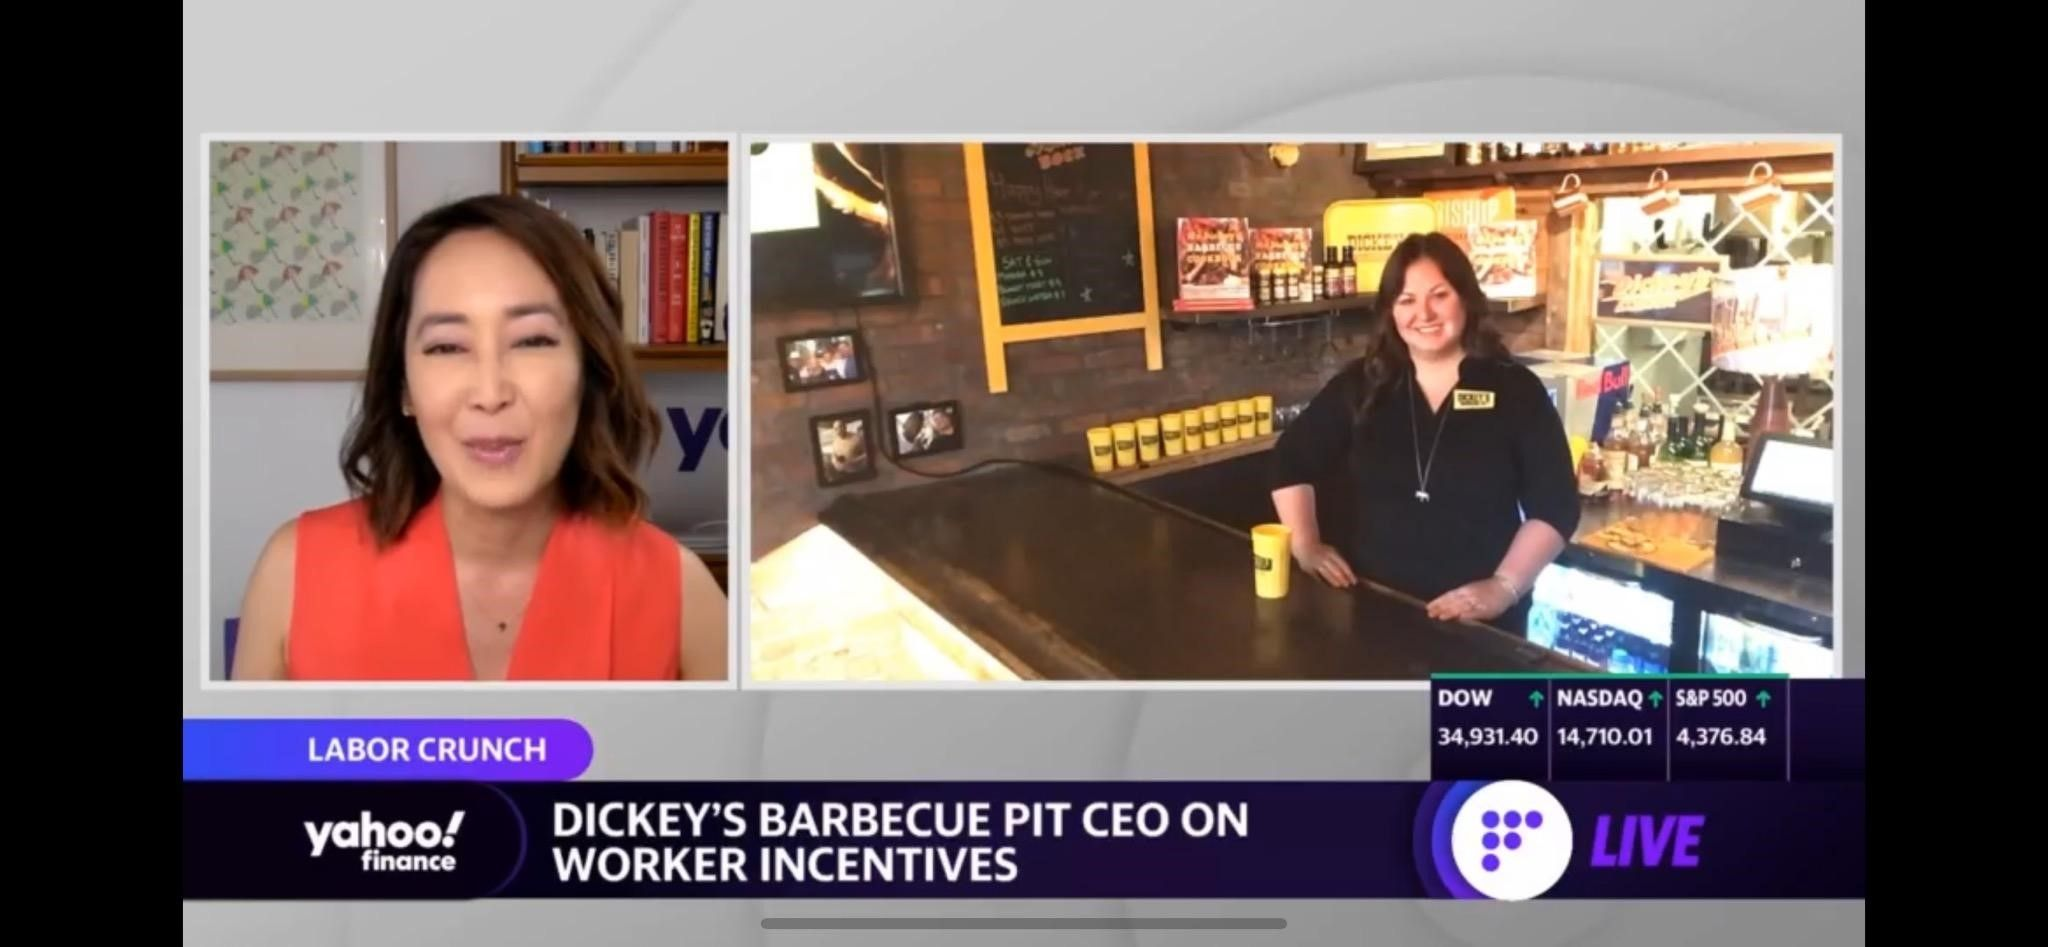 Labor Shortage Putting an 'incredible strain' on Business: Dickey's Barbecue Pit CEO